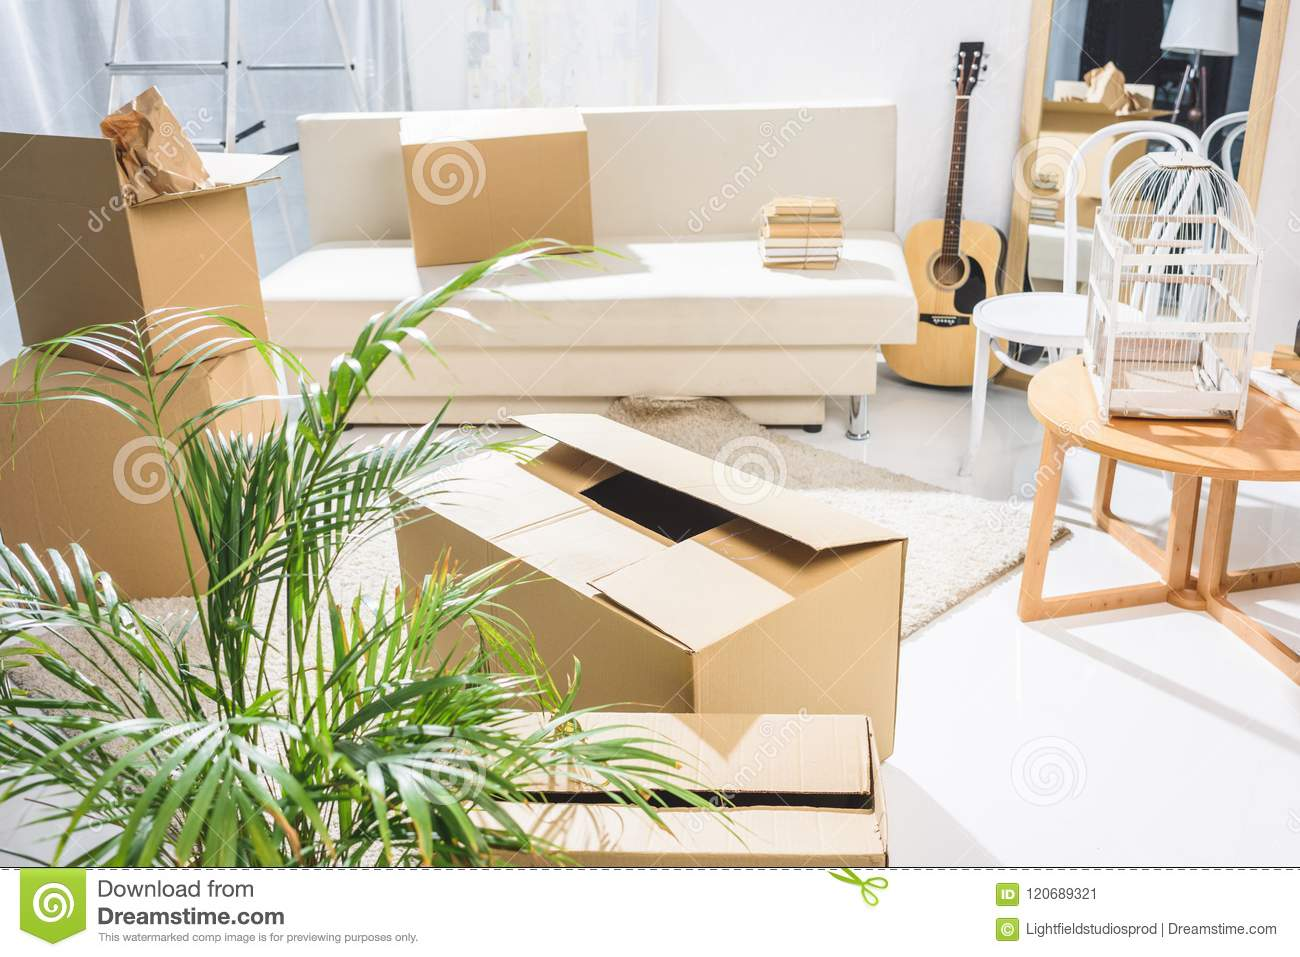 Minimalistic living room filled with moving